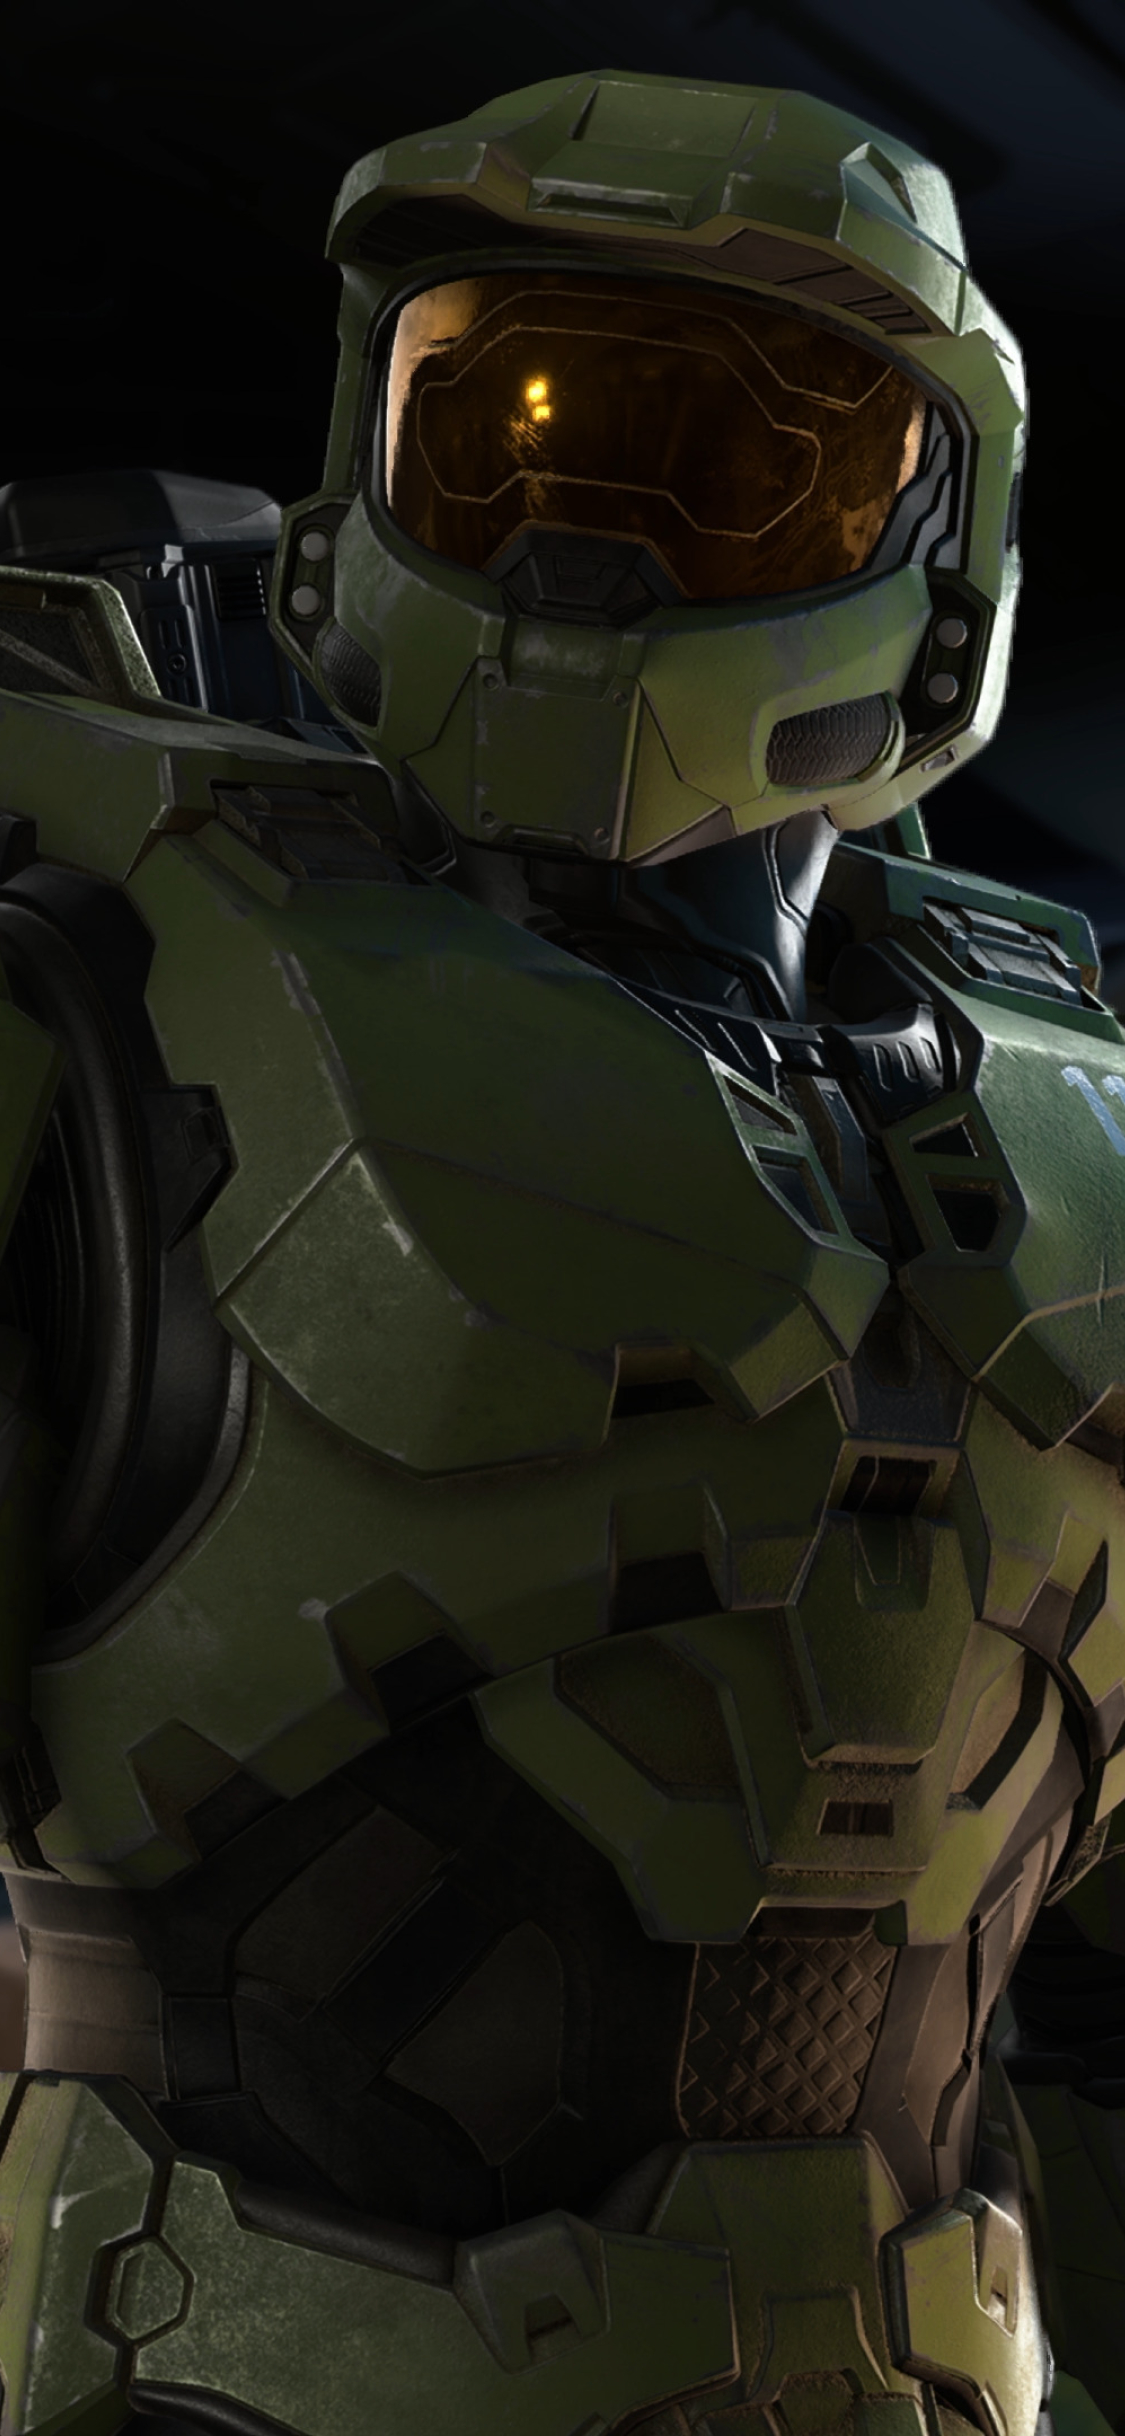 New Halo Infinite 4K Wallpaper in 1125x2436 Resolution